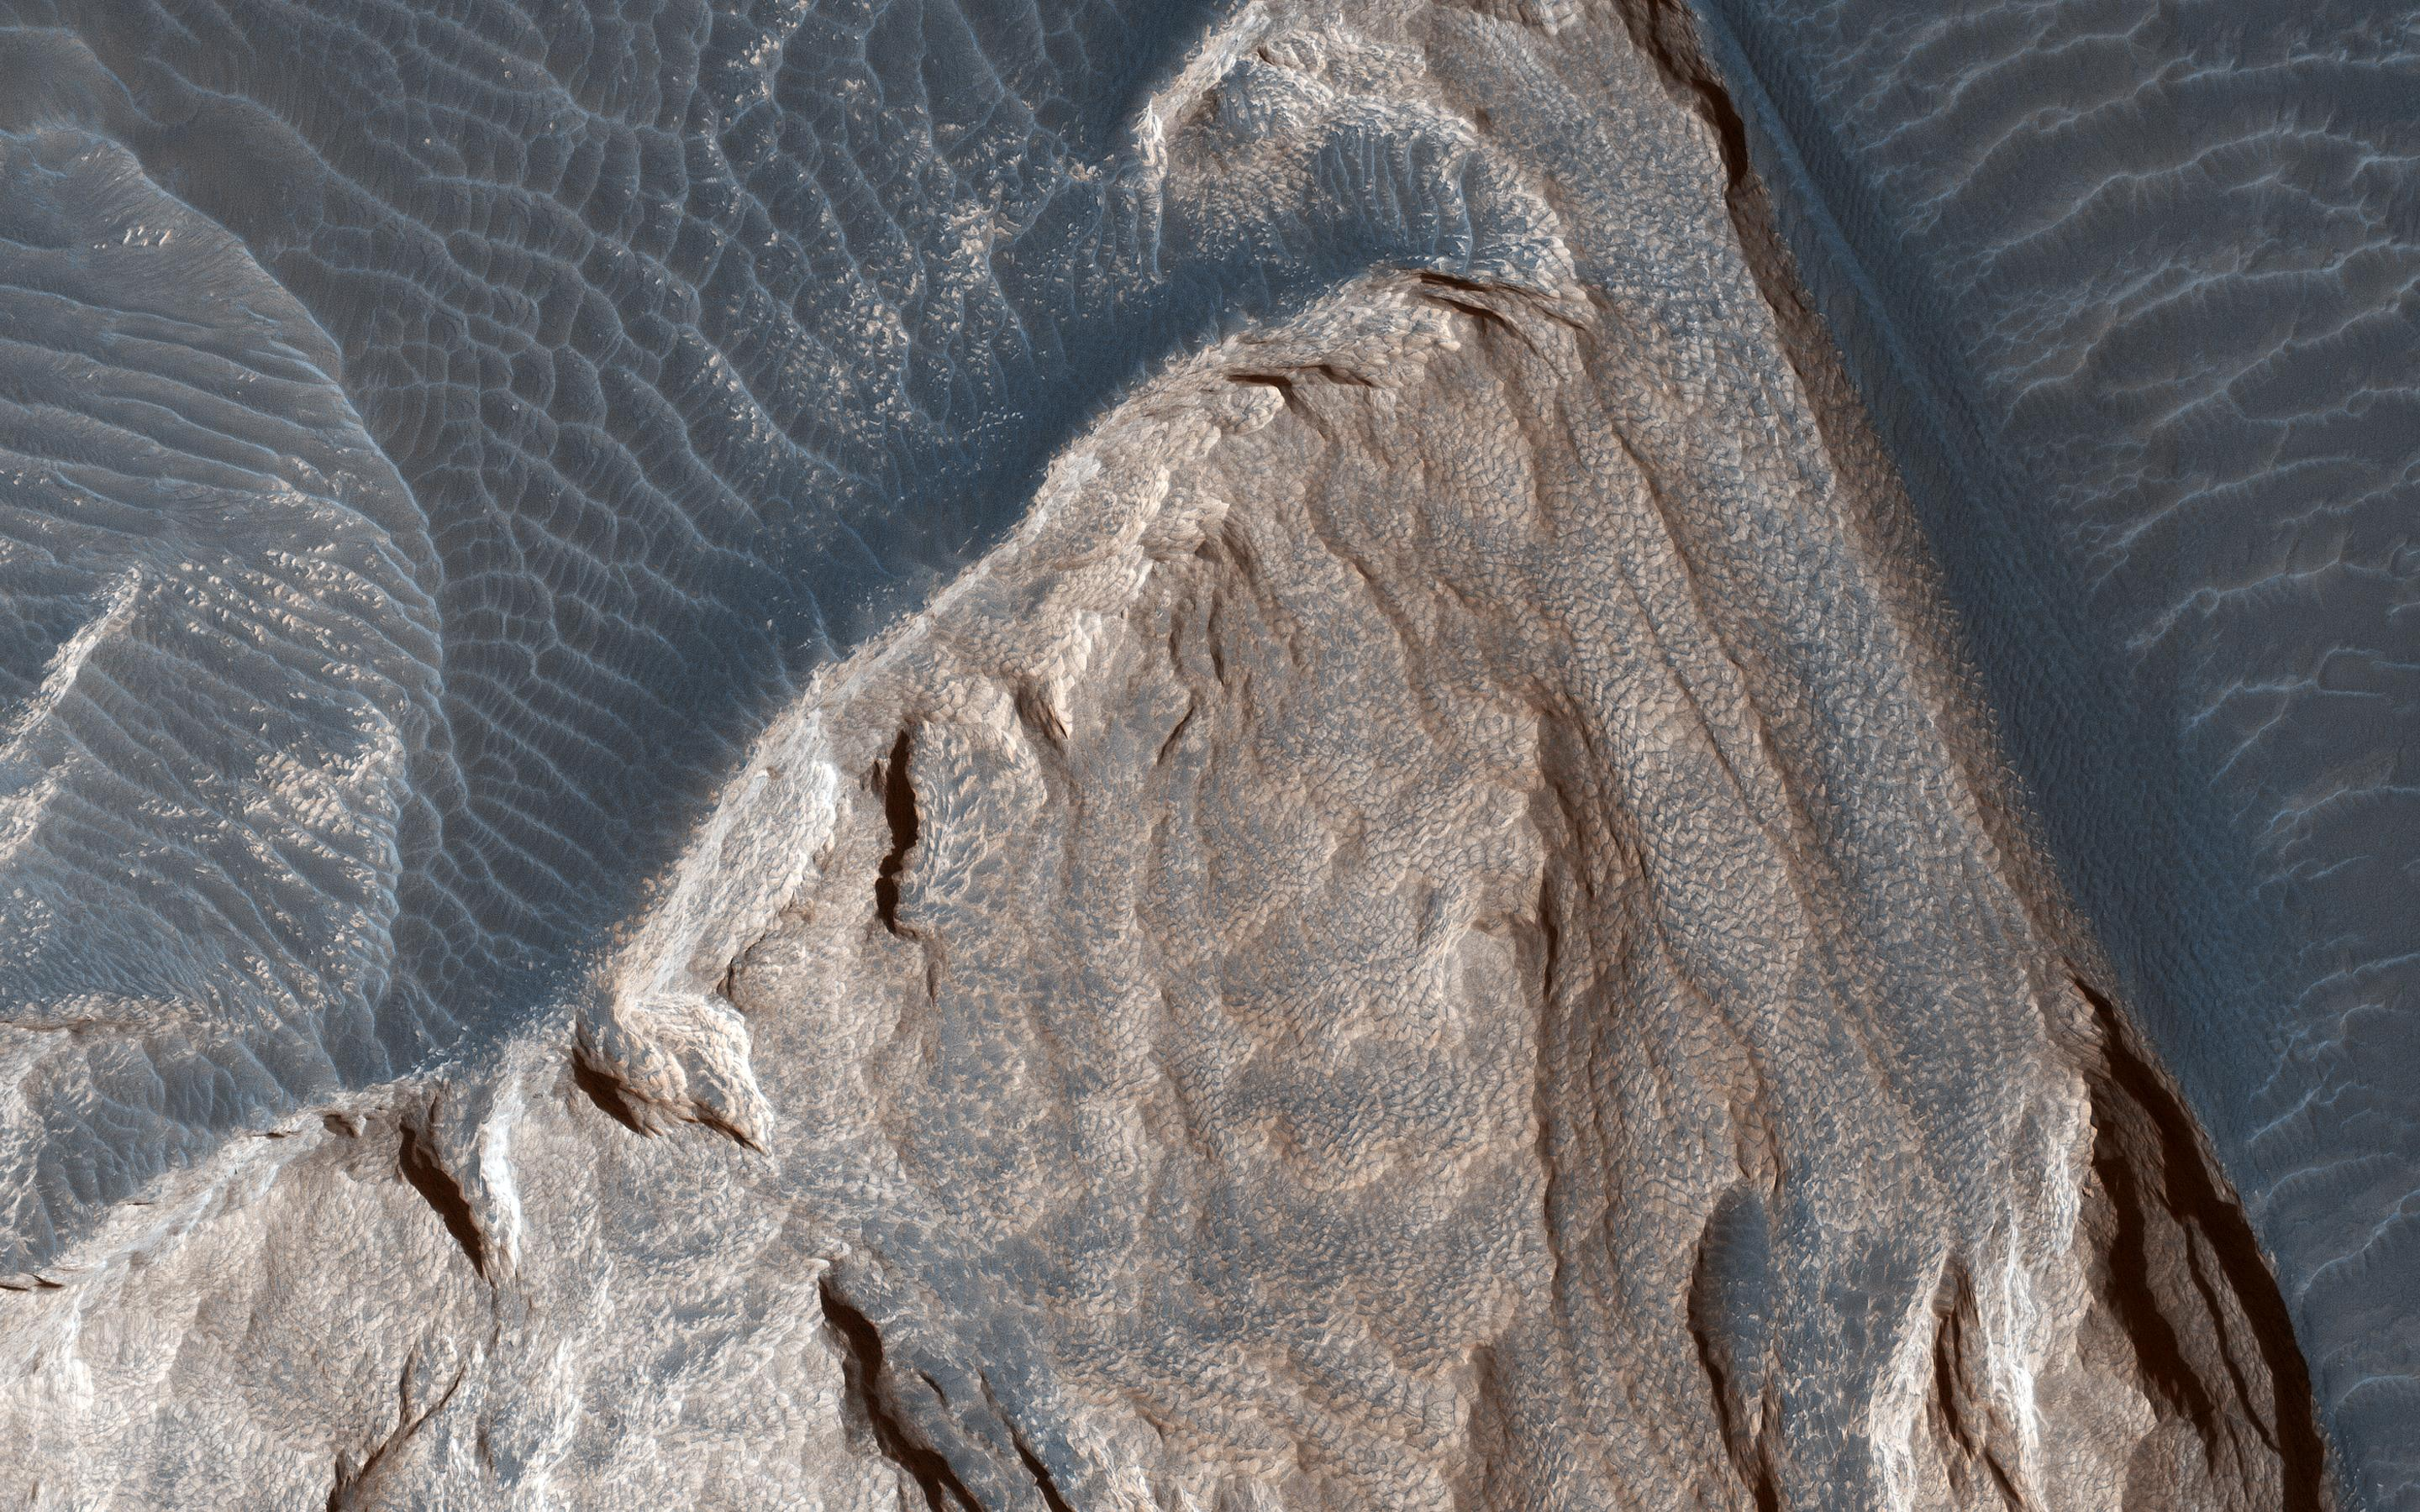 This image acquired on December 5, 2018 by NASAs Mars Reconnaissance Orbiter, shows ripples in the sand which tell us which way the wind was moving and how it was diverted around these rock formations.